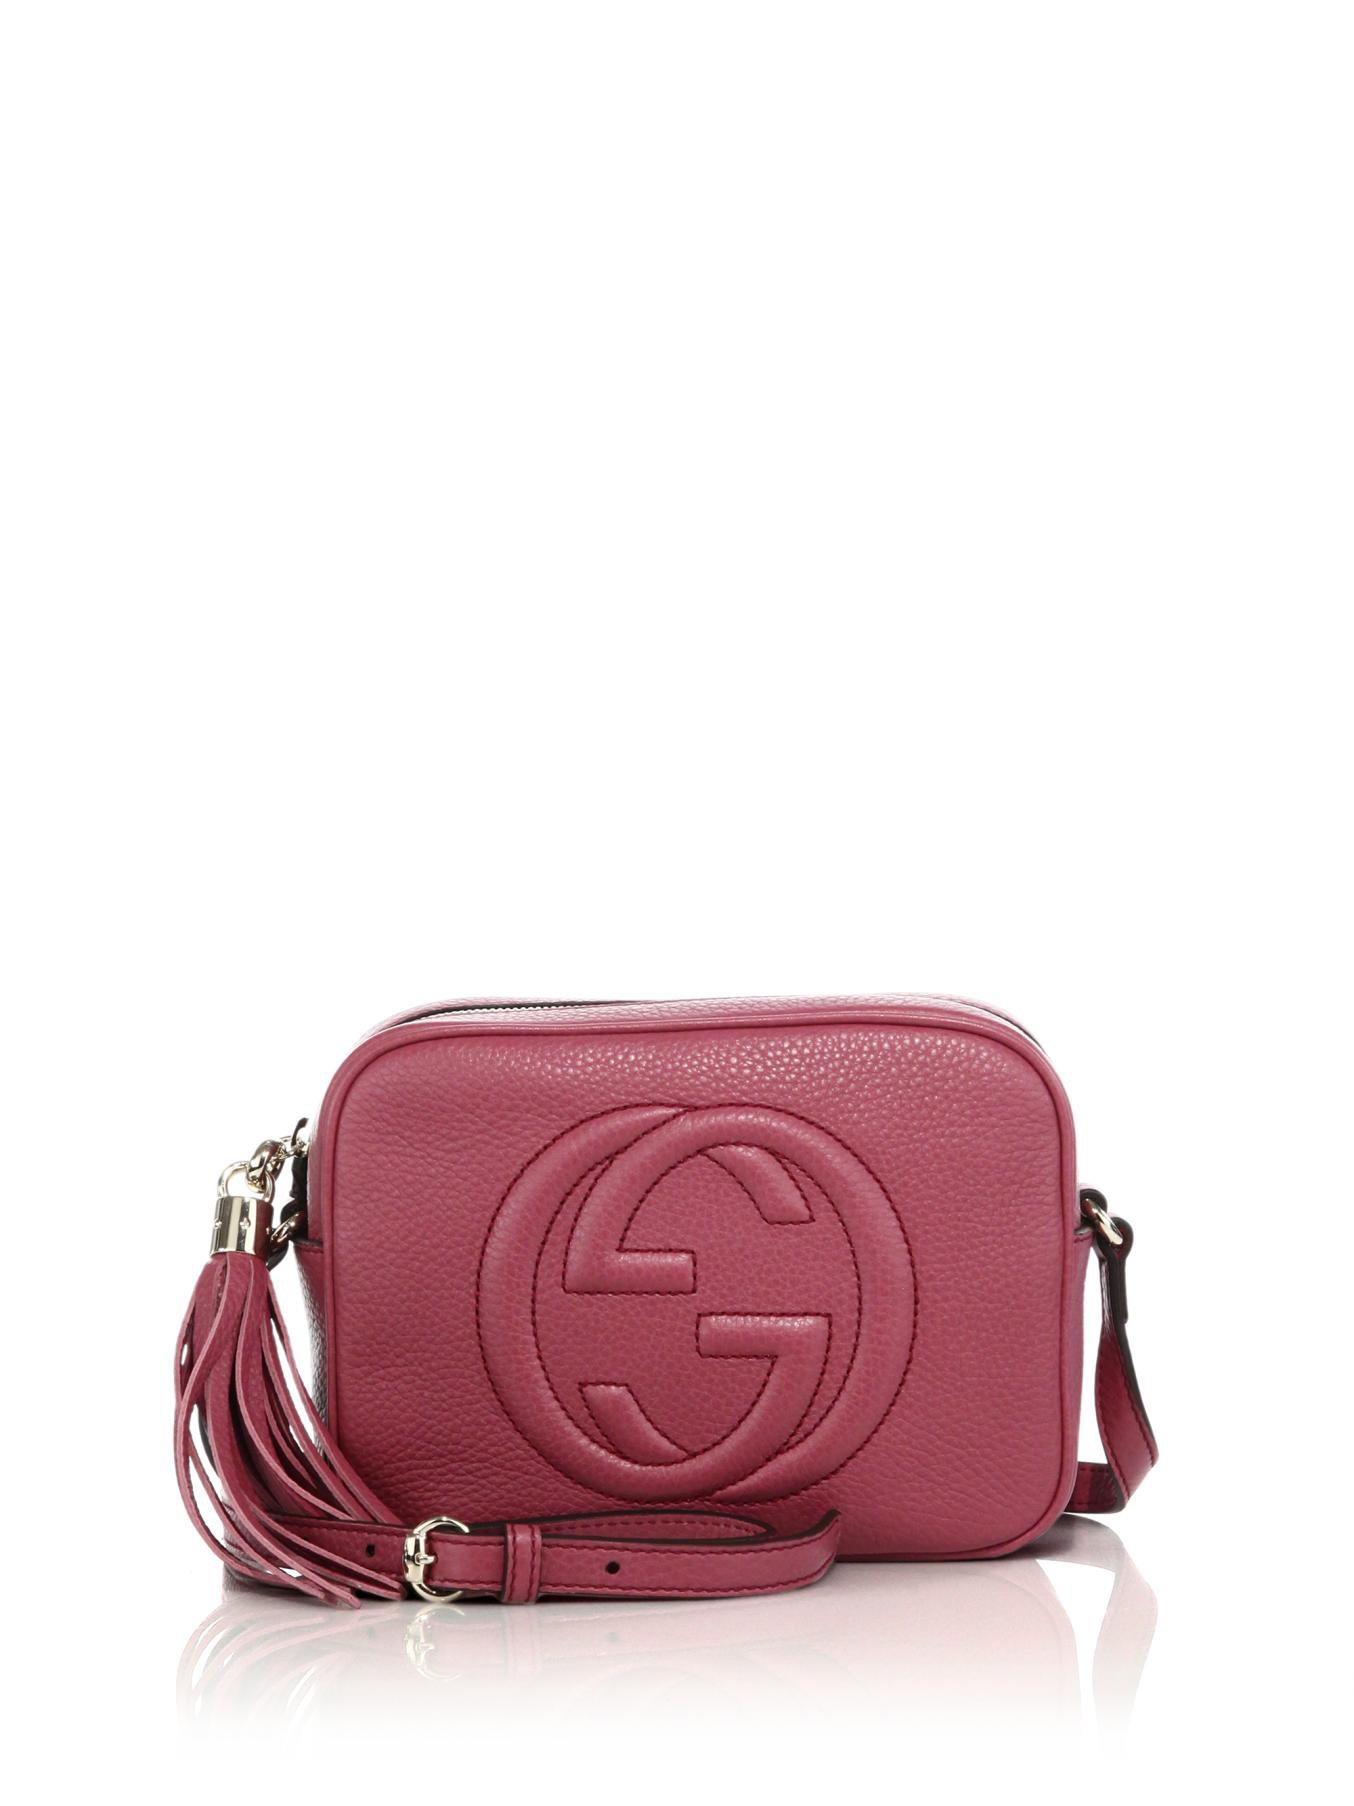 53ae9d41258 Lyst - Gucci Soho Leather Disco Bag in Pink